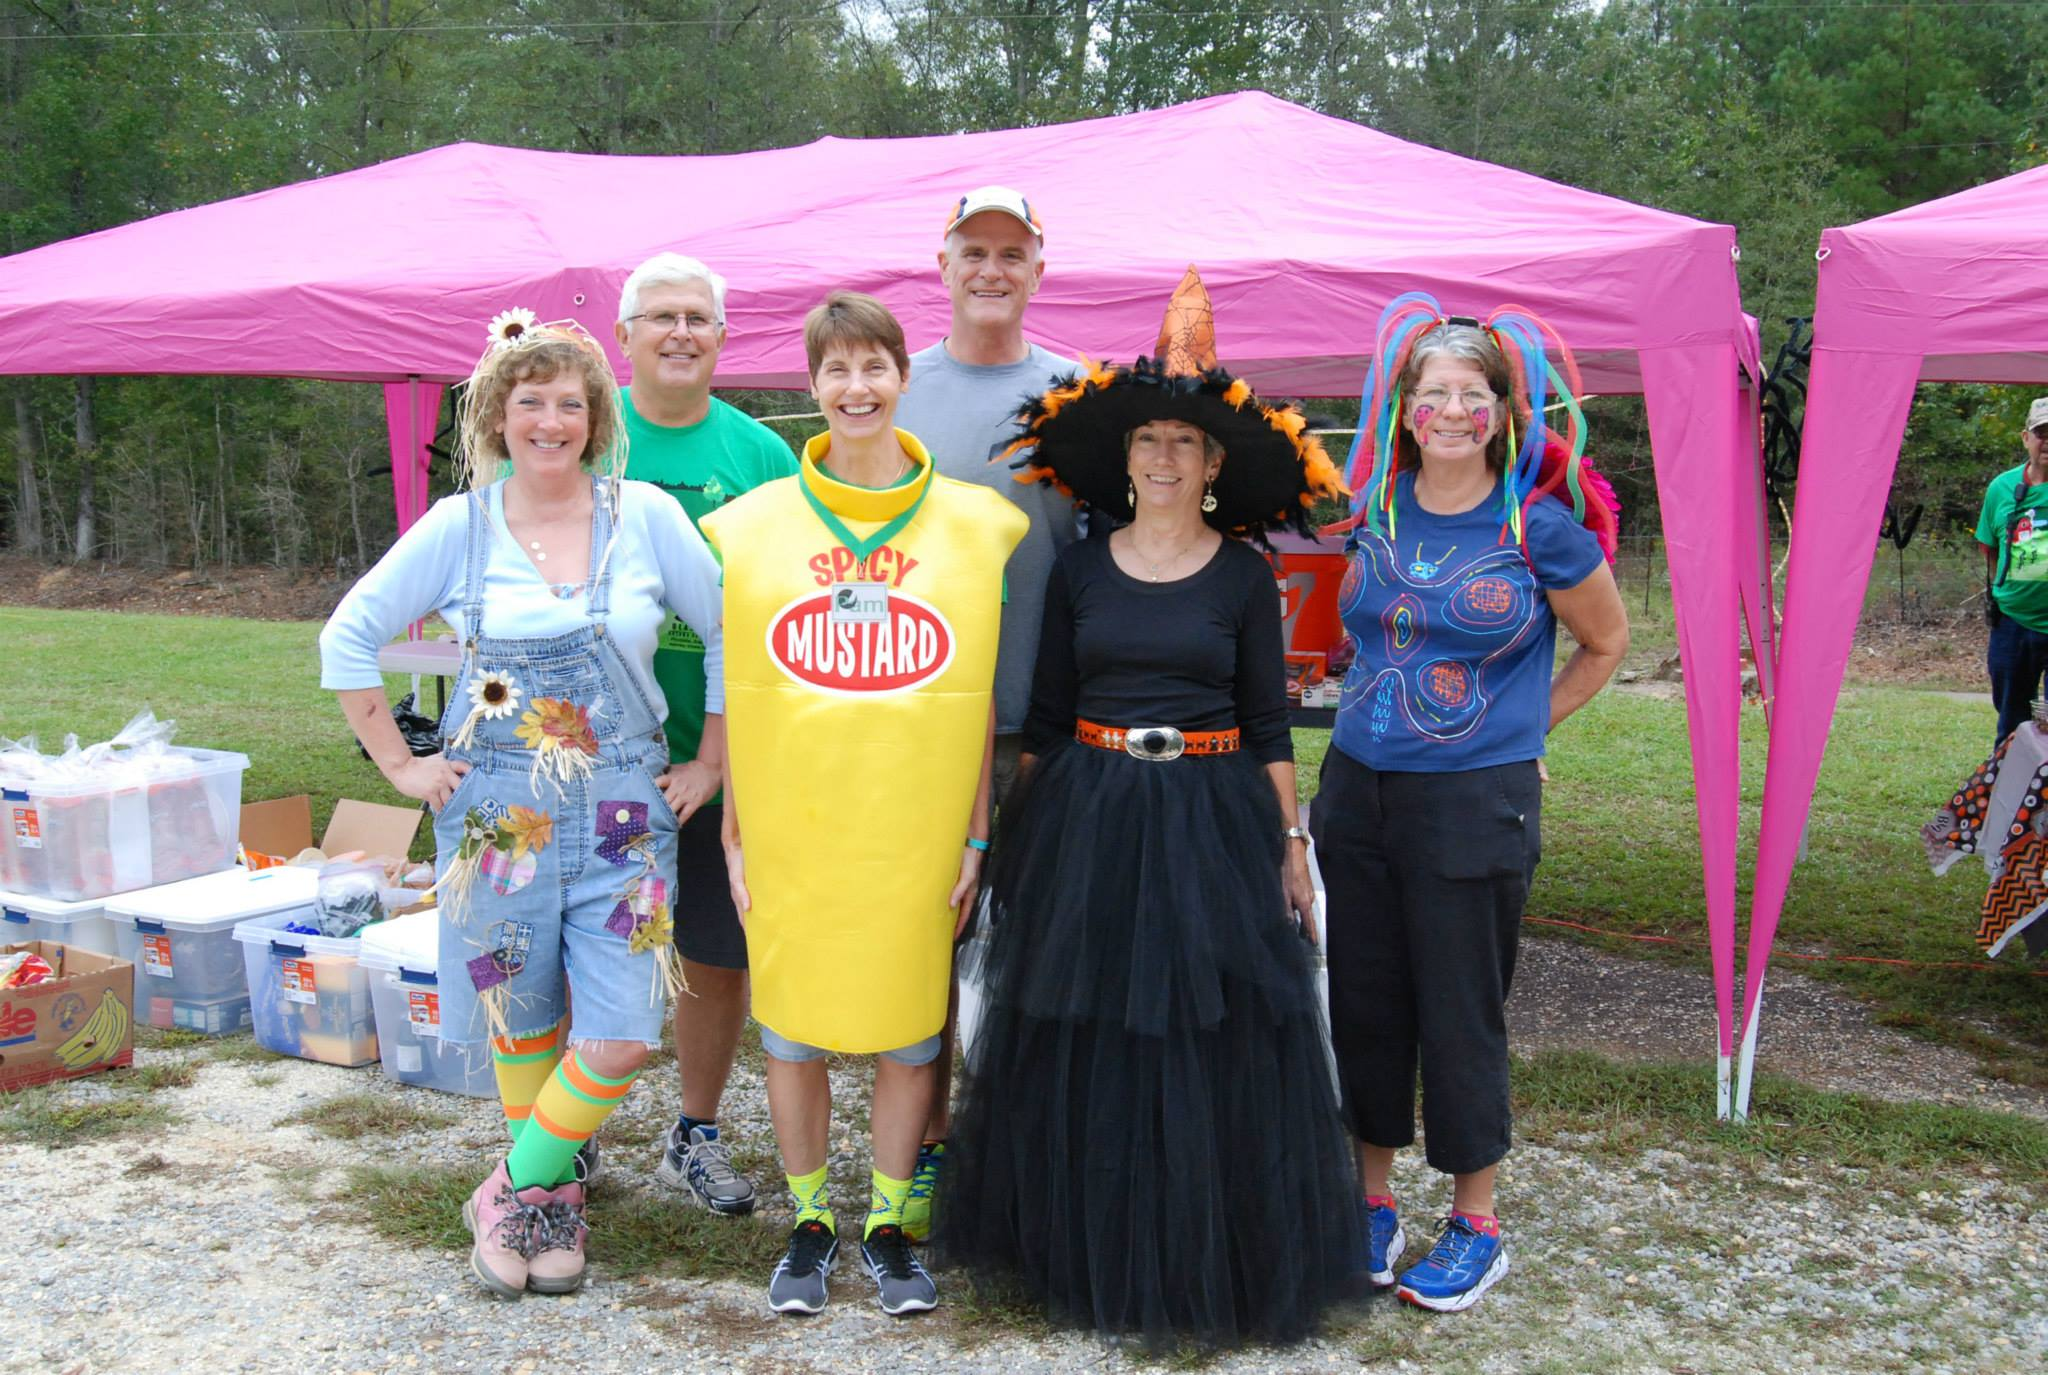 https://alabama-travel.s3.amazonaws.com/partners-uploads/photo/image/577c0cd64d6421144a000013/halloween_town_rest_stop_characters.jpg